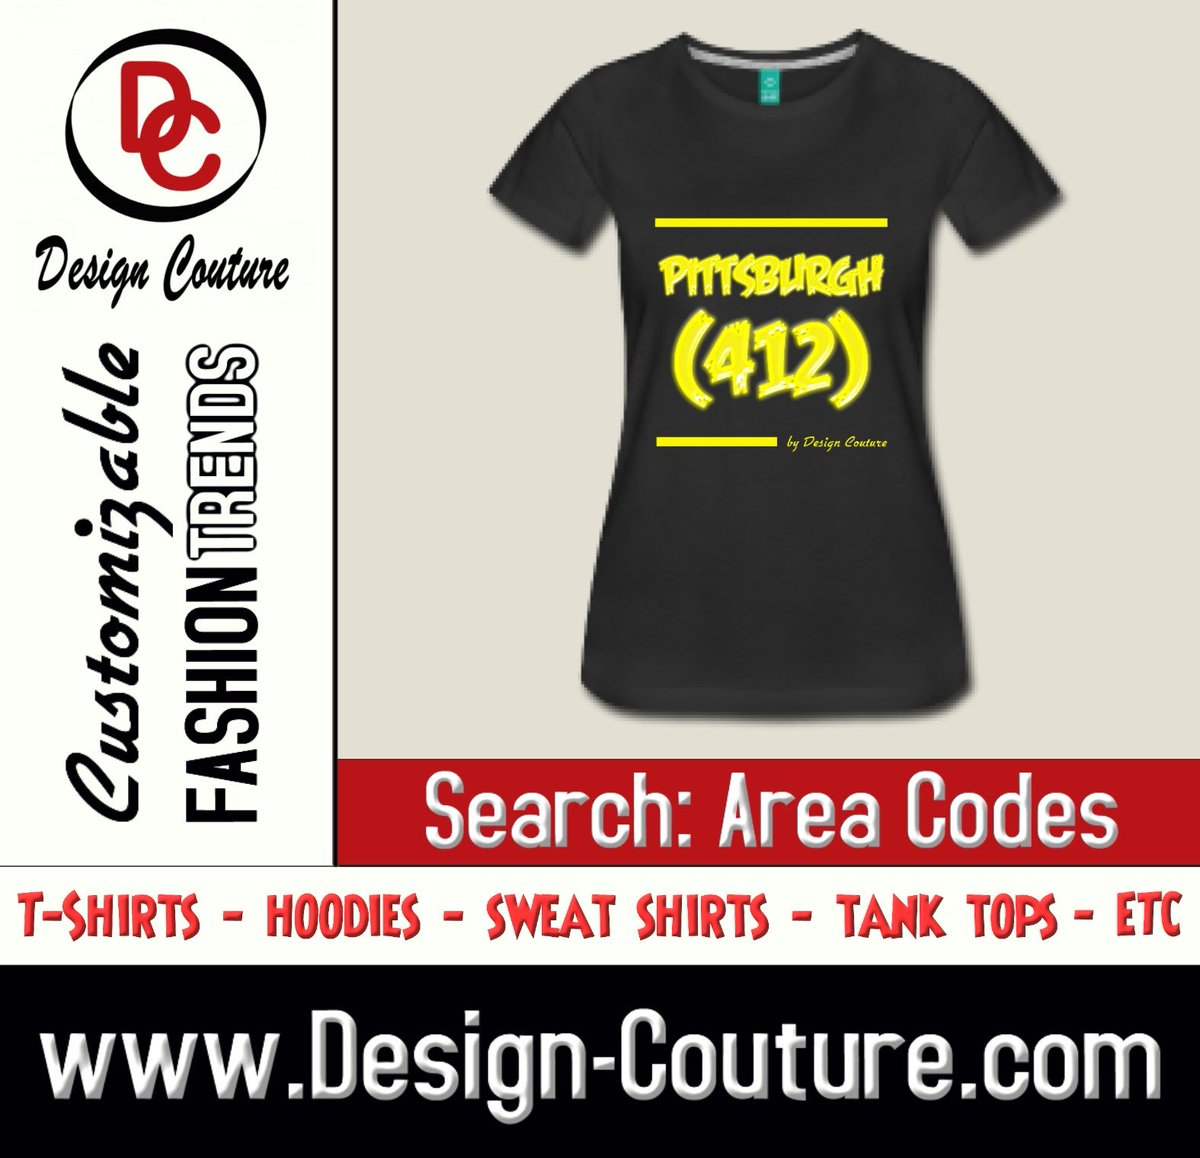 Make a Bold Fashion Statement with Design Couture Customizable Fashion Trends and More.  Design: Pittsburgh (412) Search: Area Codes https://t.co/NACycnvT1Y ——————————————————— Order yours today. ——————————————————— New Designs Uploaded Daily! ——————————————————— Design Couture https://t.co/0JHkzLYlby